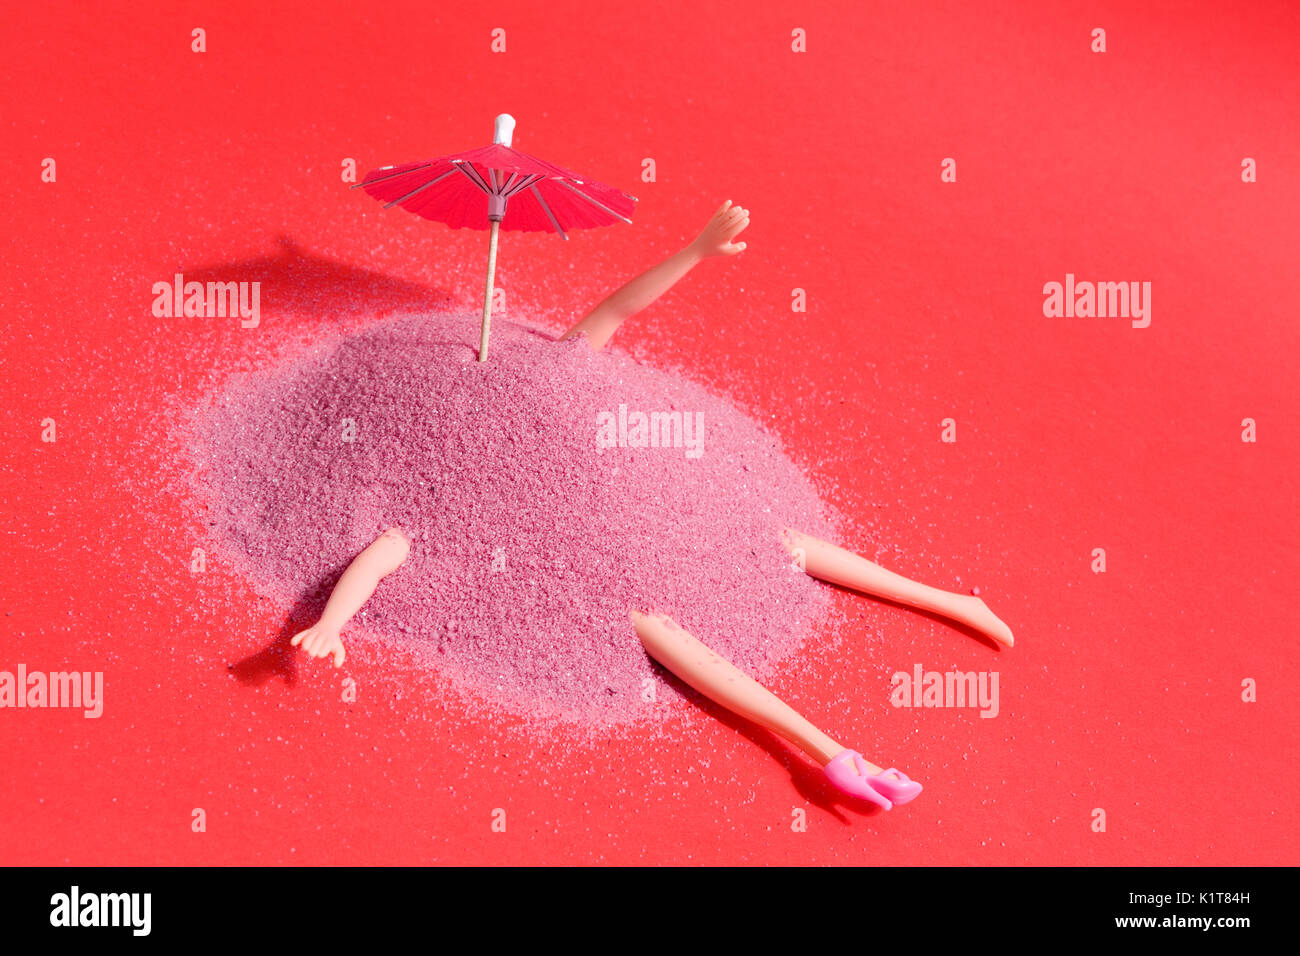 Arm and leg's doll emerging from a pile of pink sand as if it were hiding. Minimal funny and quirky design still - Stock Image